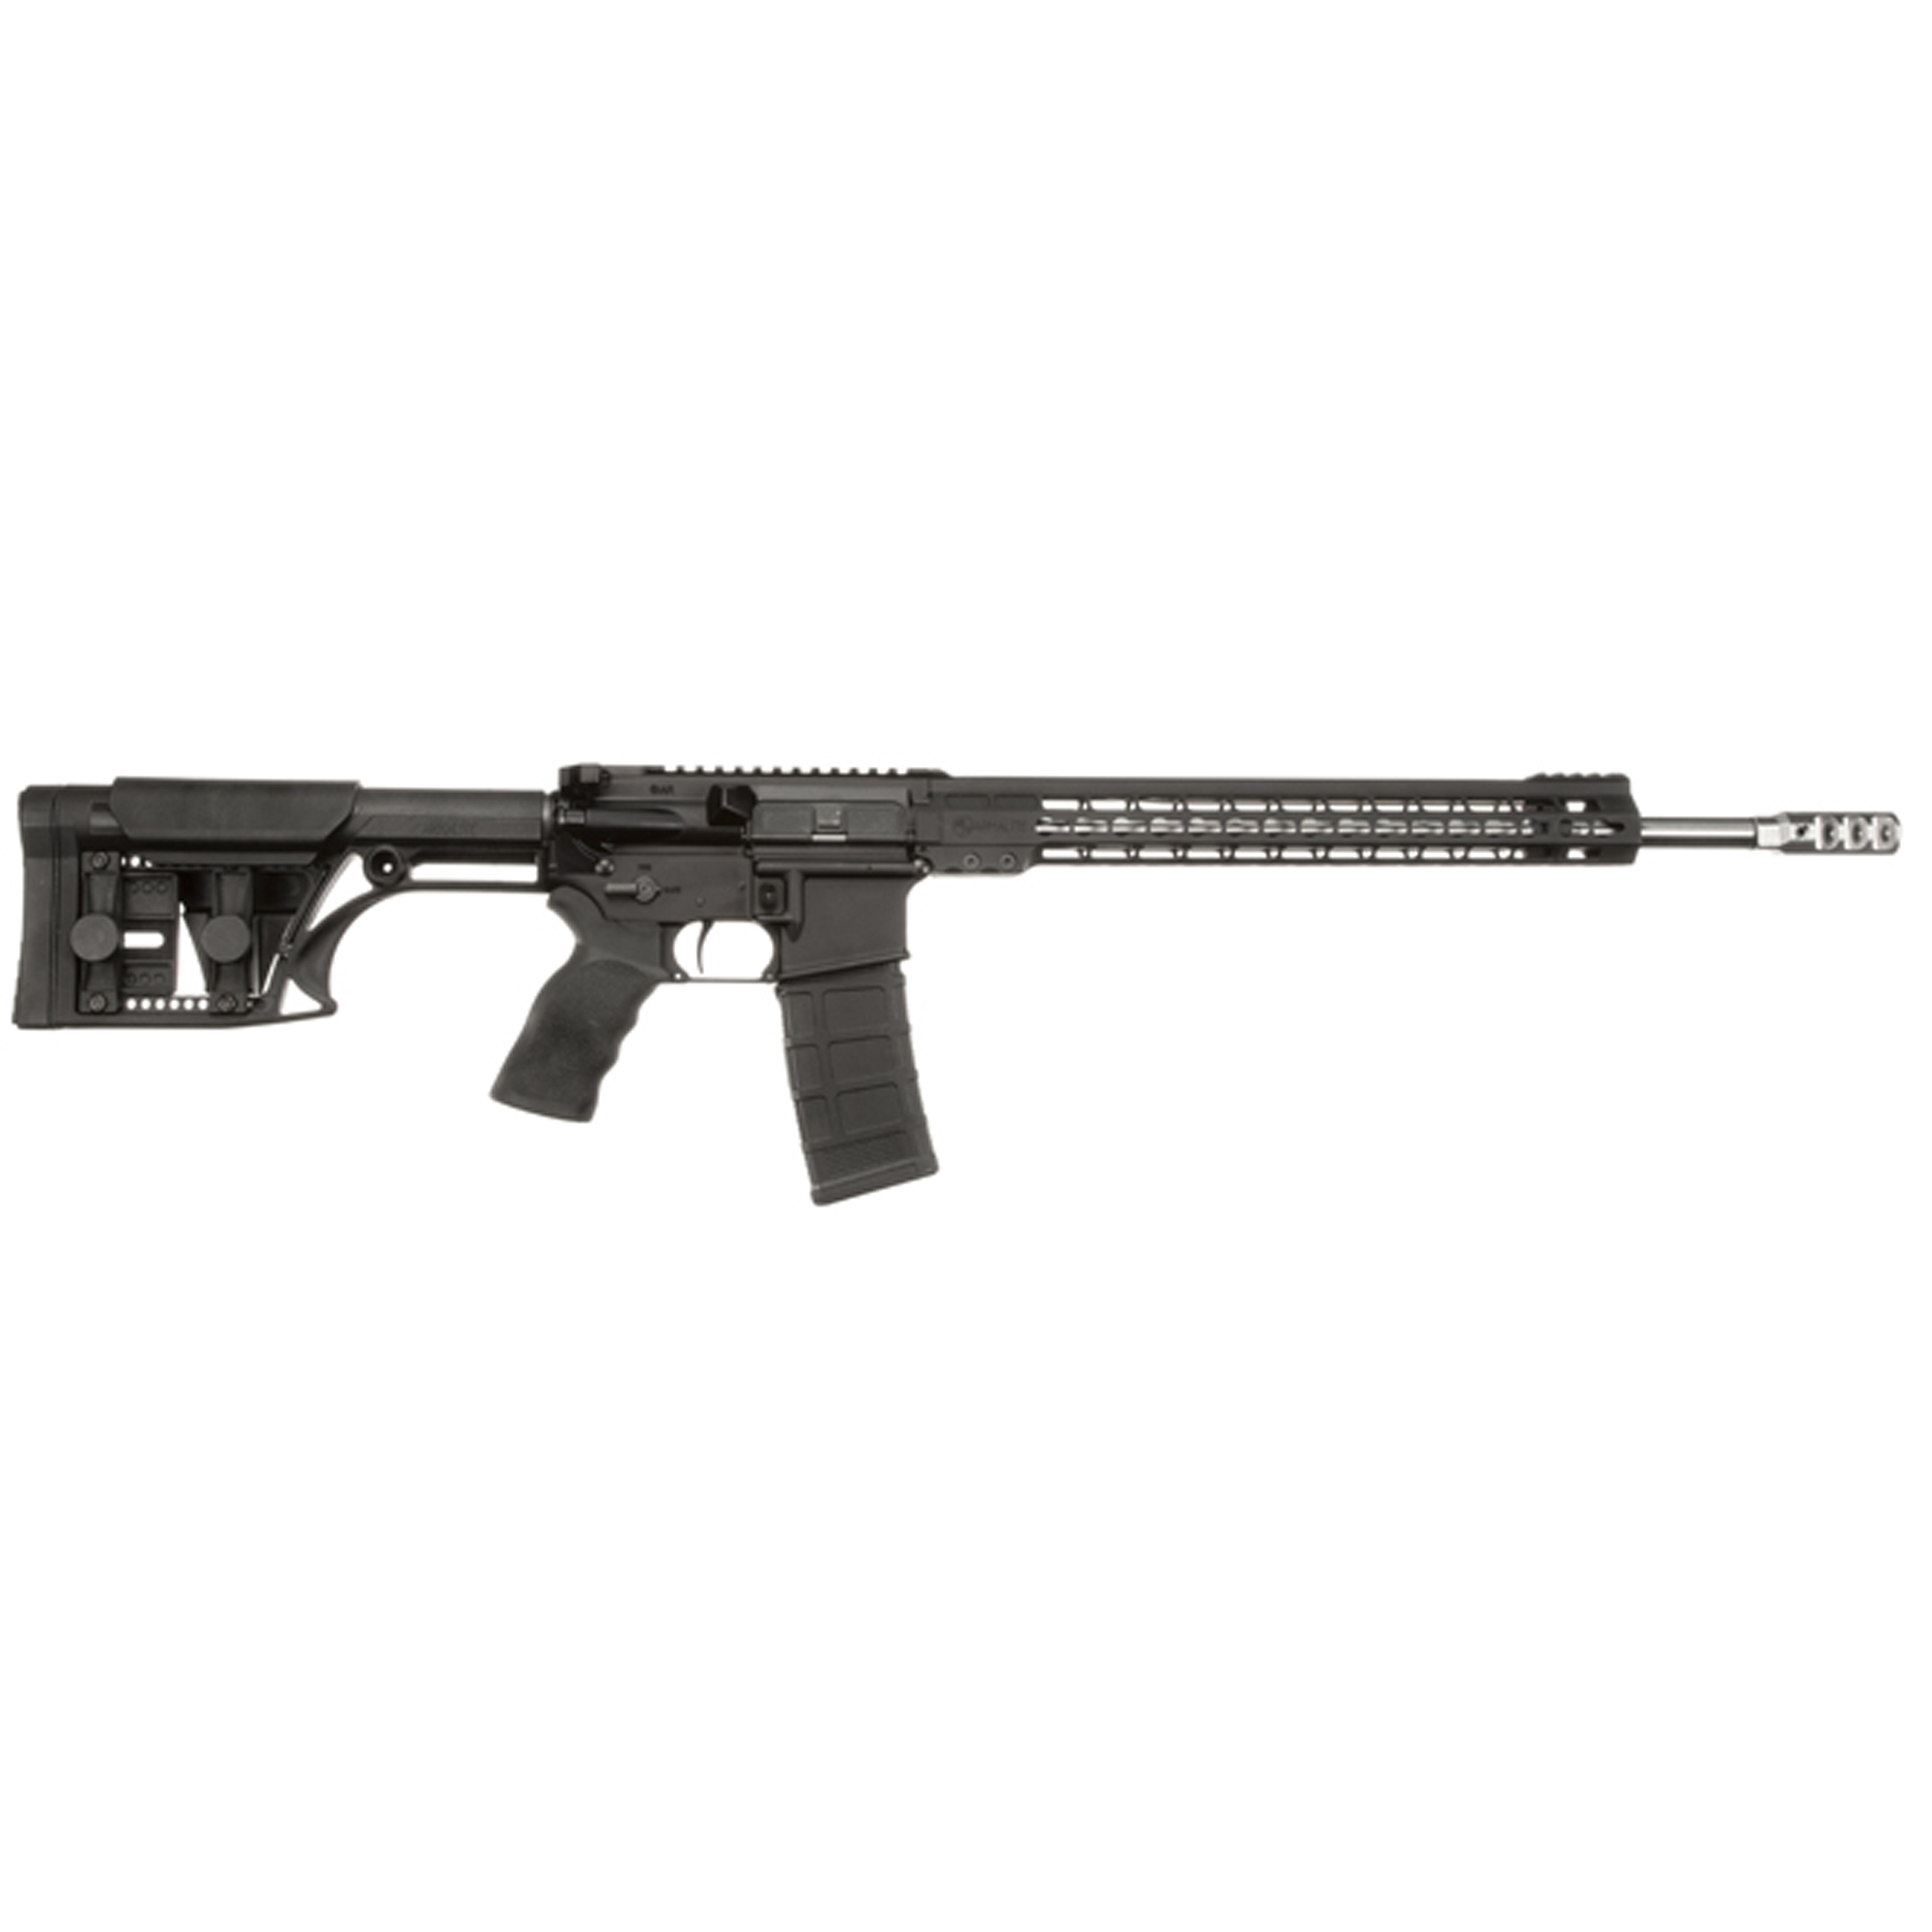 """Purpose built for 3-Gun and practical rifle competition"""" the M153GN18 is ready to dominate"""" right out-of-the-box. A Timney 4-lb."""" single-stage trigger and Ergo wide grip come standard. The light weight MBA-1 buttstock features an adjustable cheek piece and length-of-pull."""